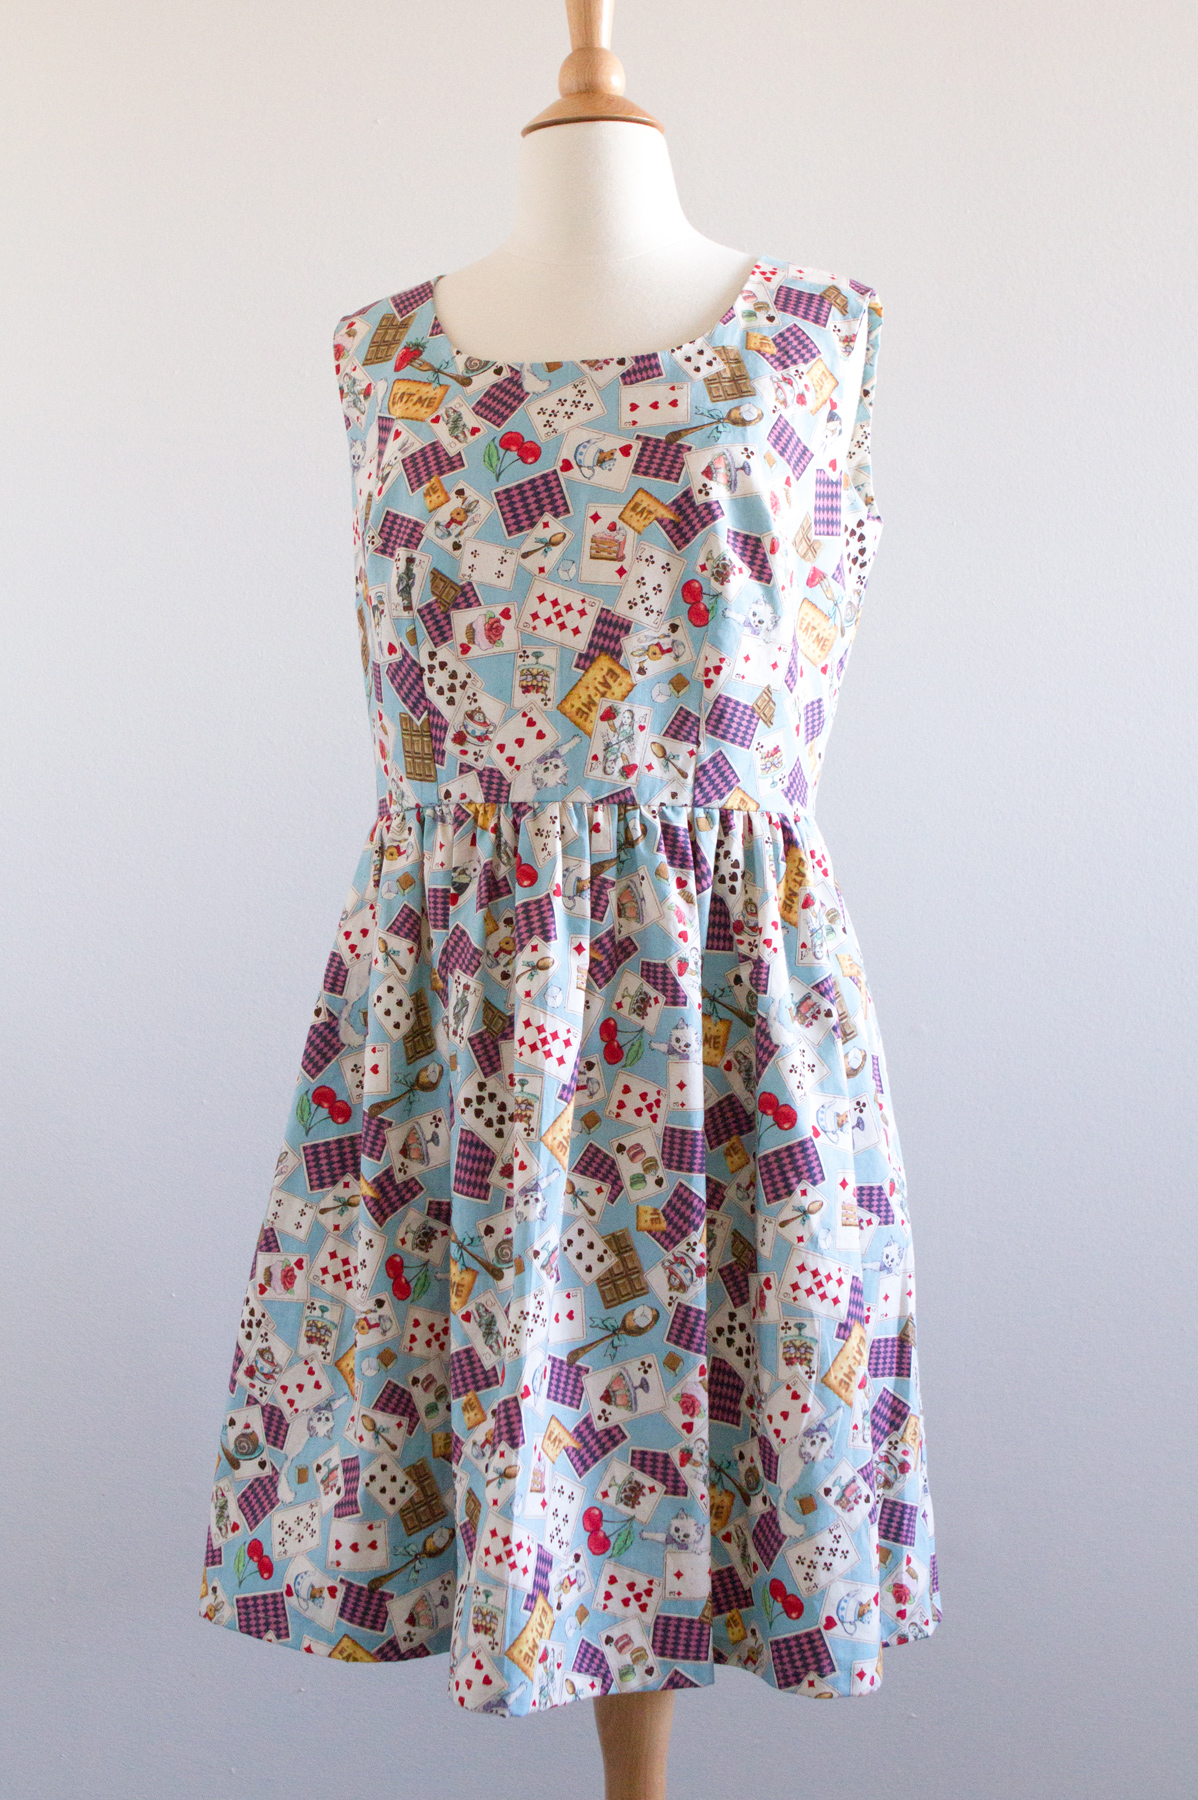 My first Alice print dress (and won't be the last)